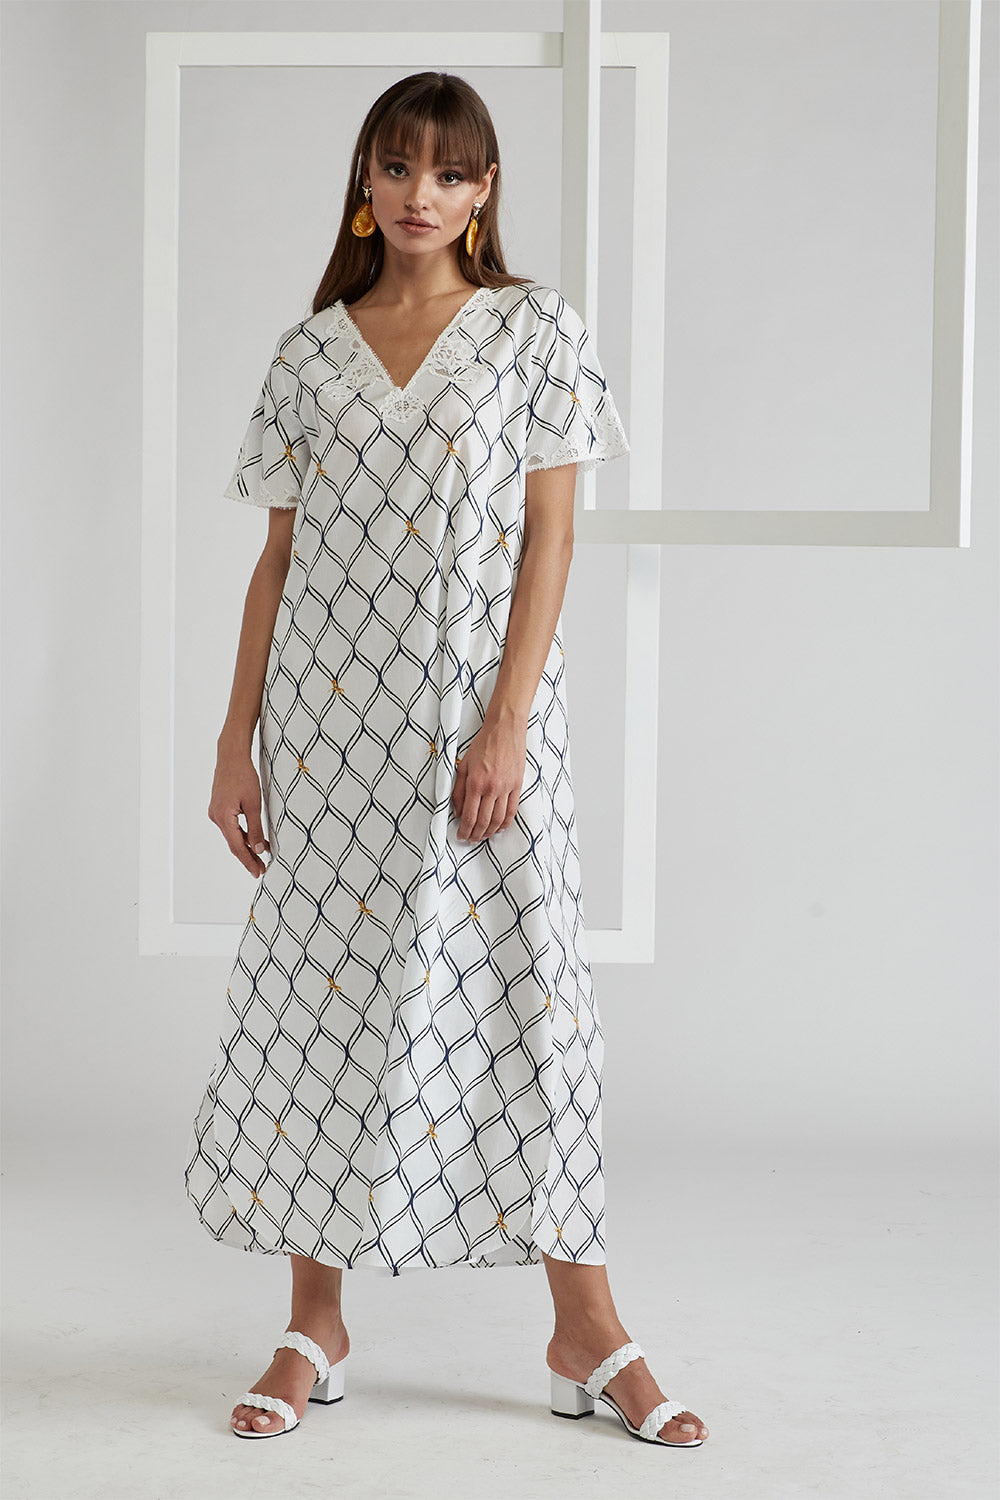 Printed and Trimmed Cotton Poplin Dress - Royal Bee - Off White